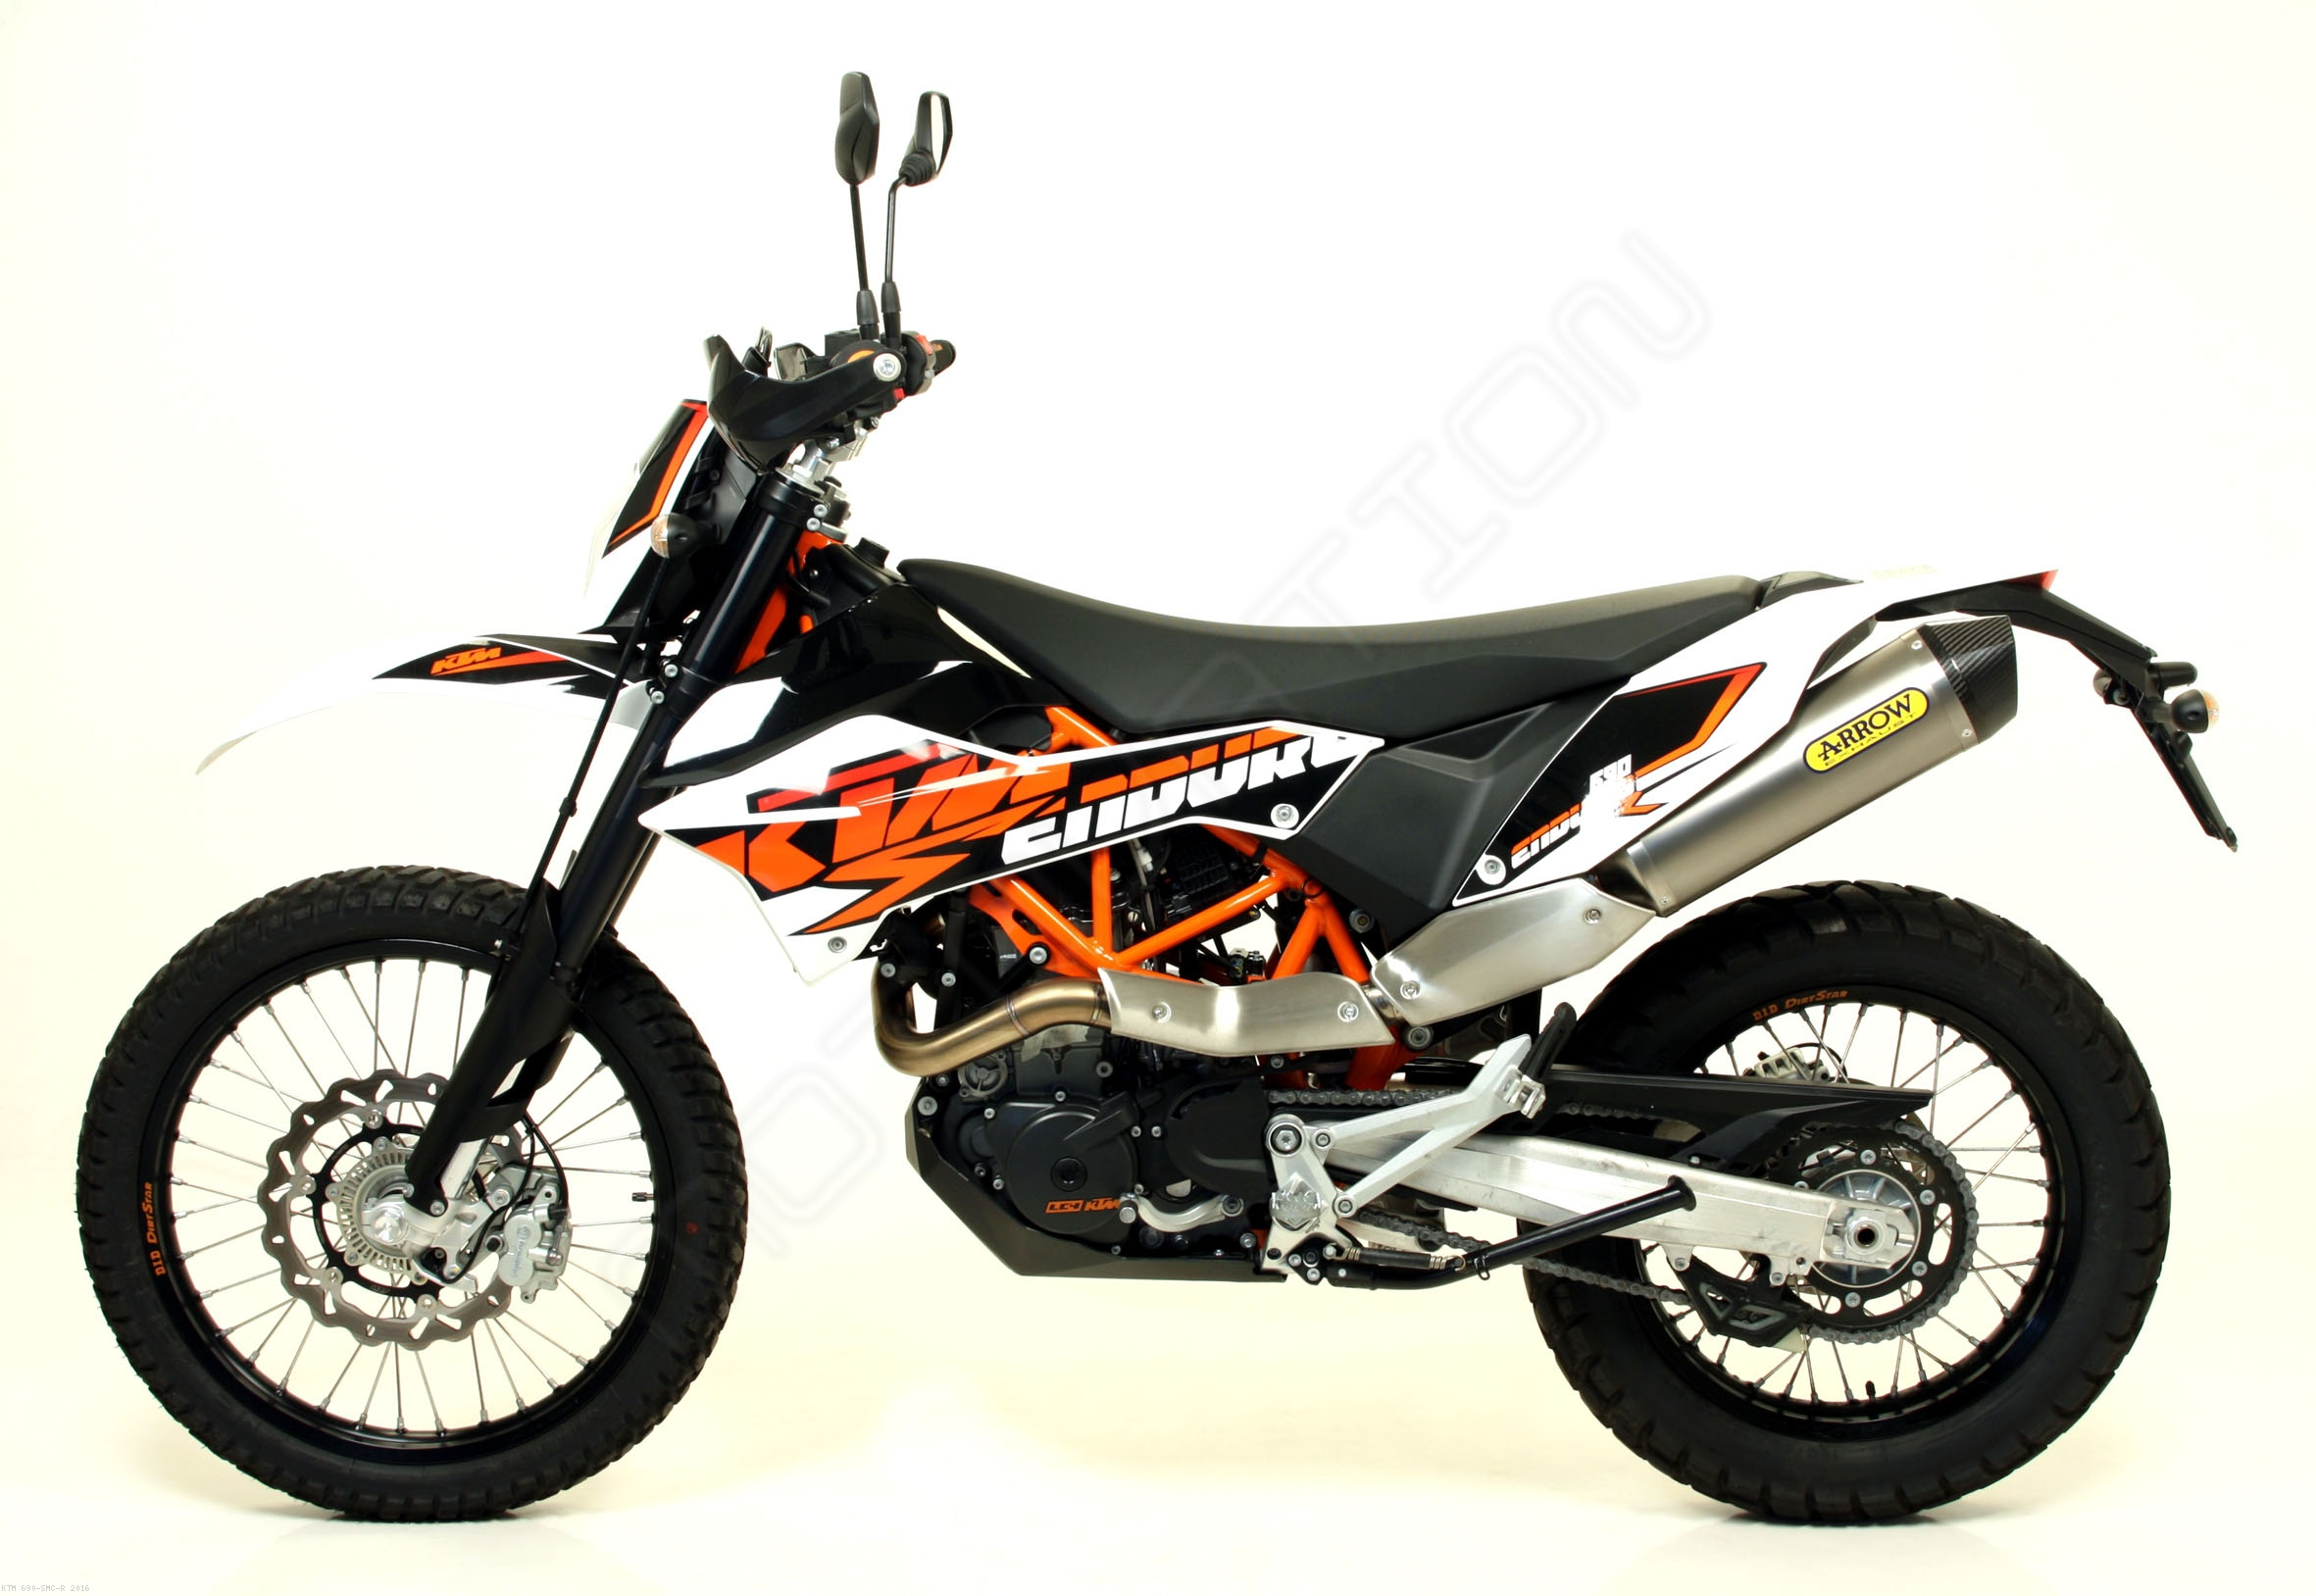 race tech exhaust by arrow ktm 690 smc r 2016 72618. Black Bedroom Furniture Sets. Home Design Ideas